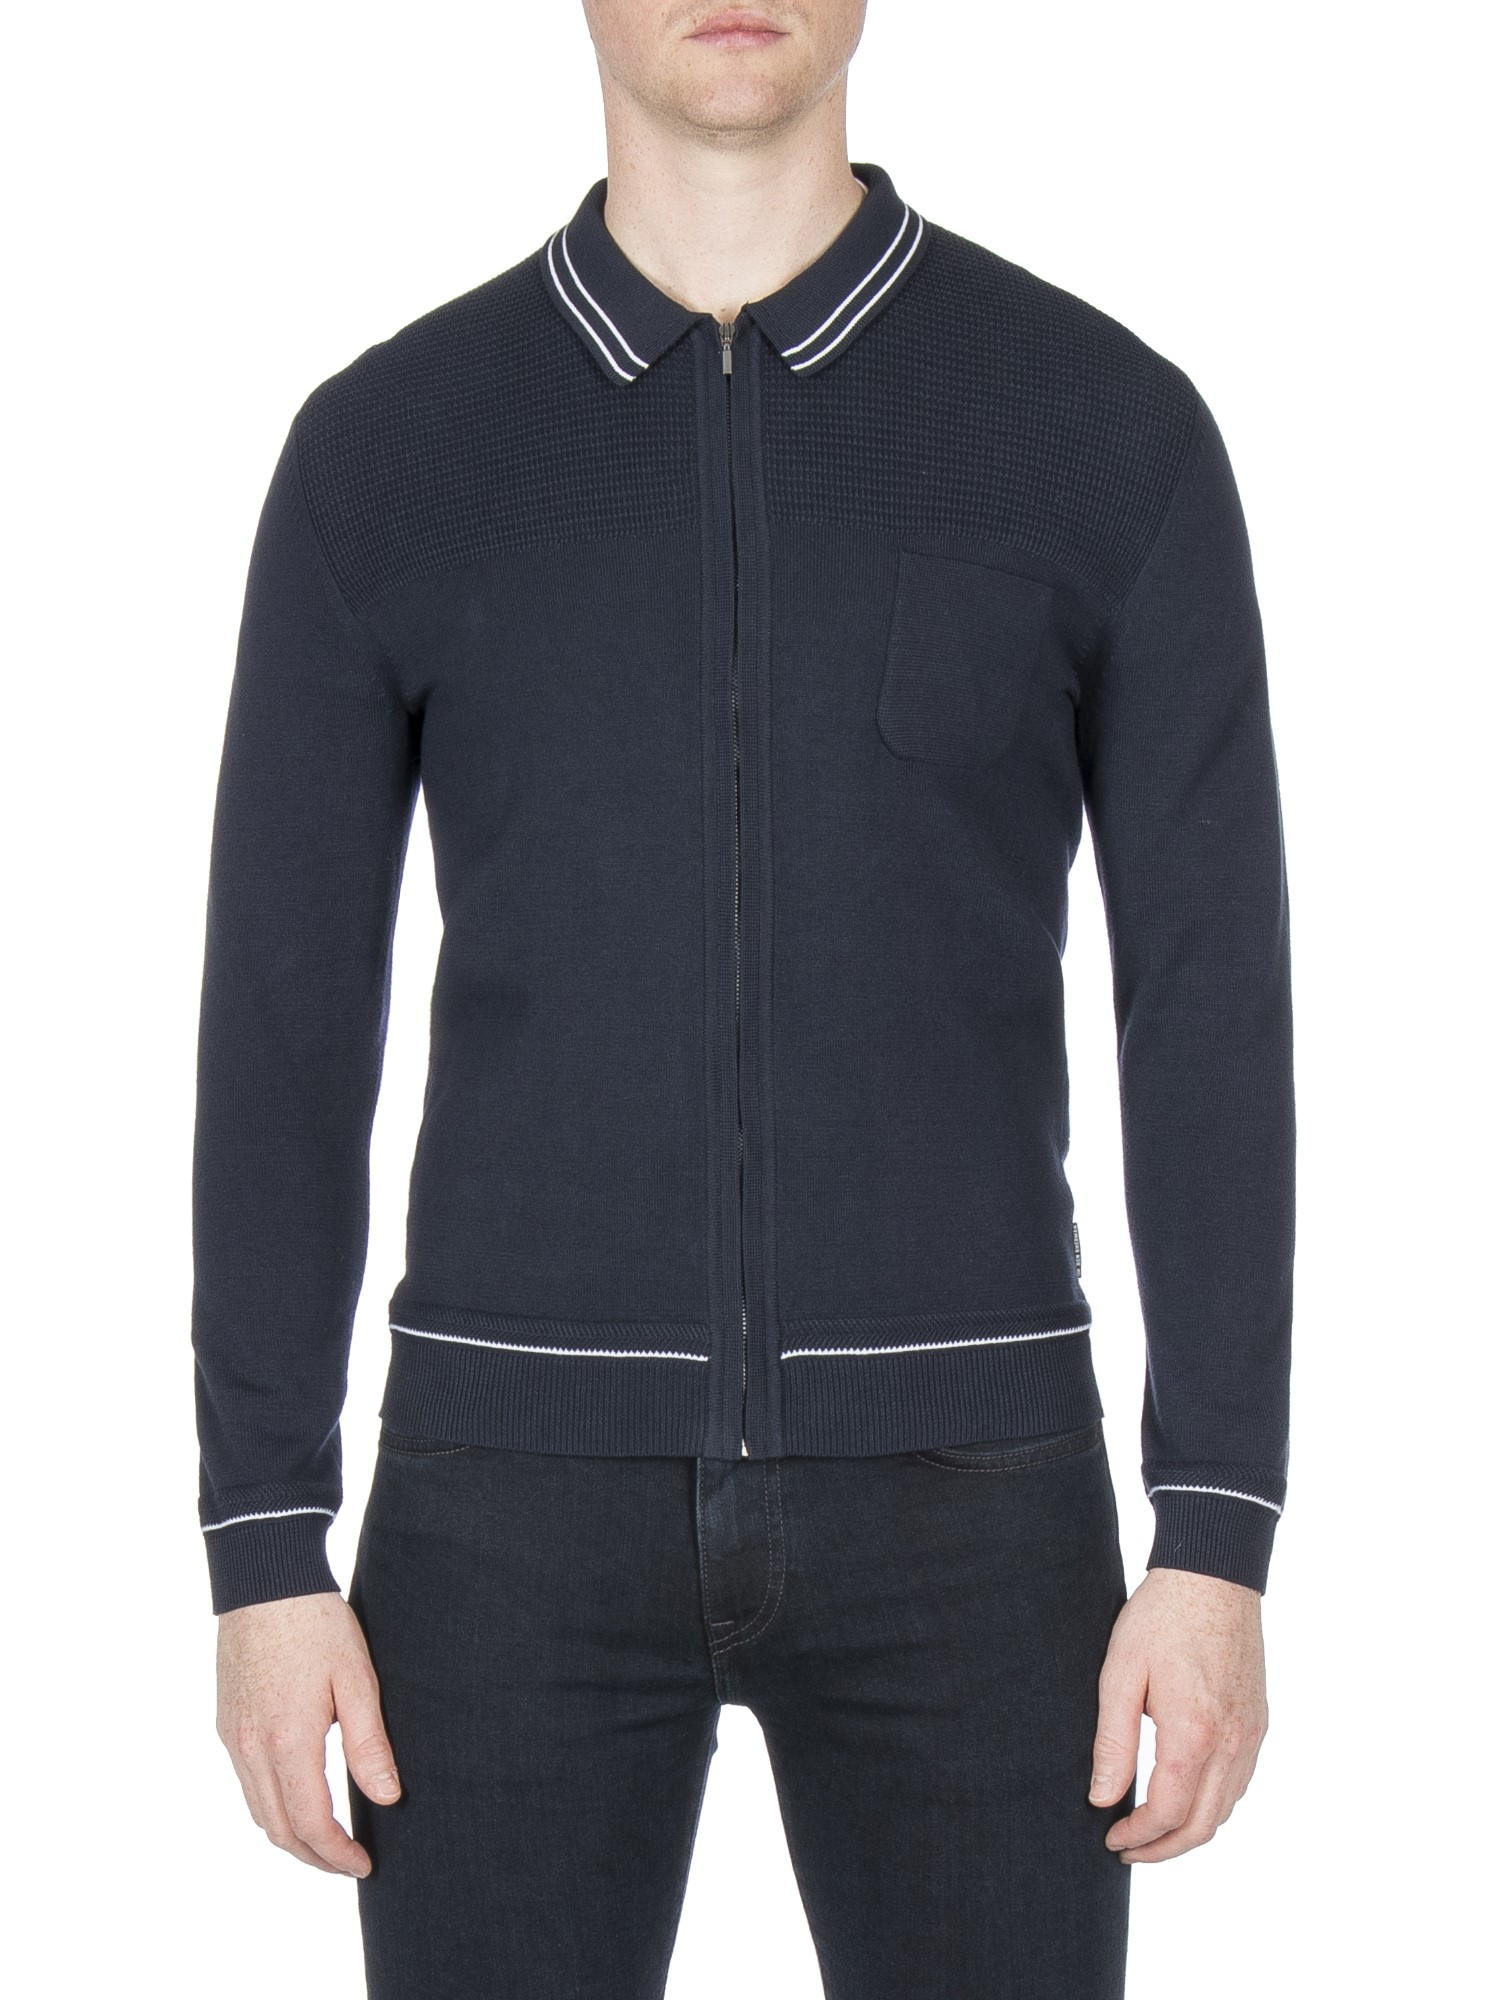 Ben Sherman Navy Knitted Milano Jacket